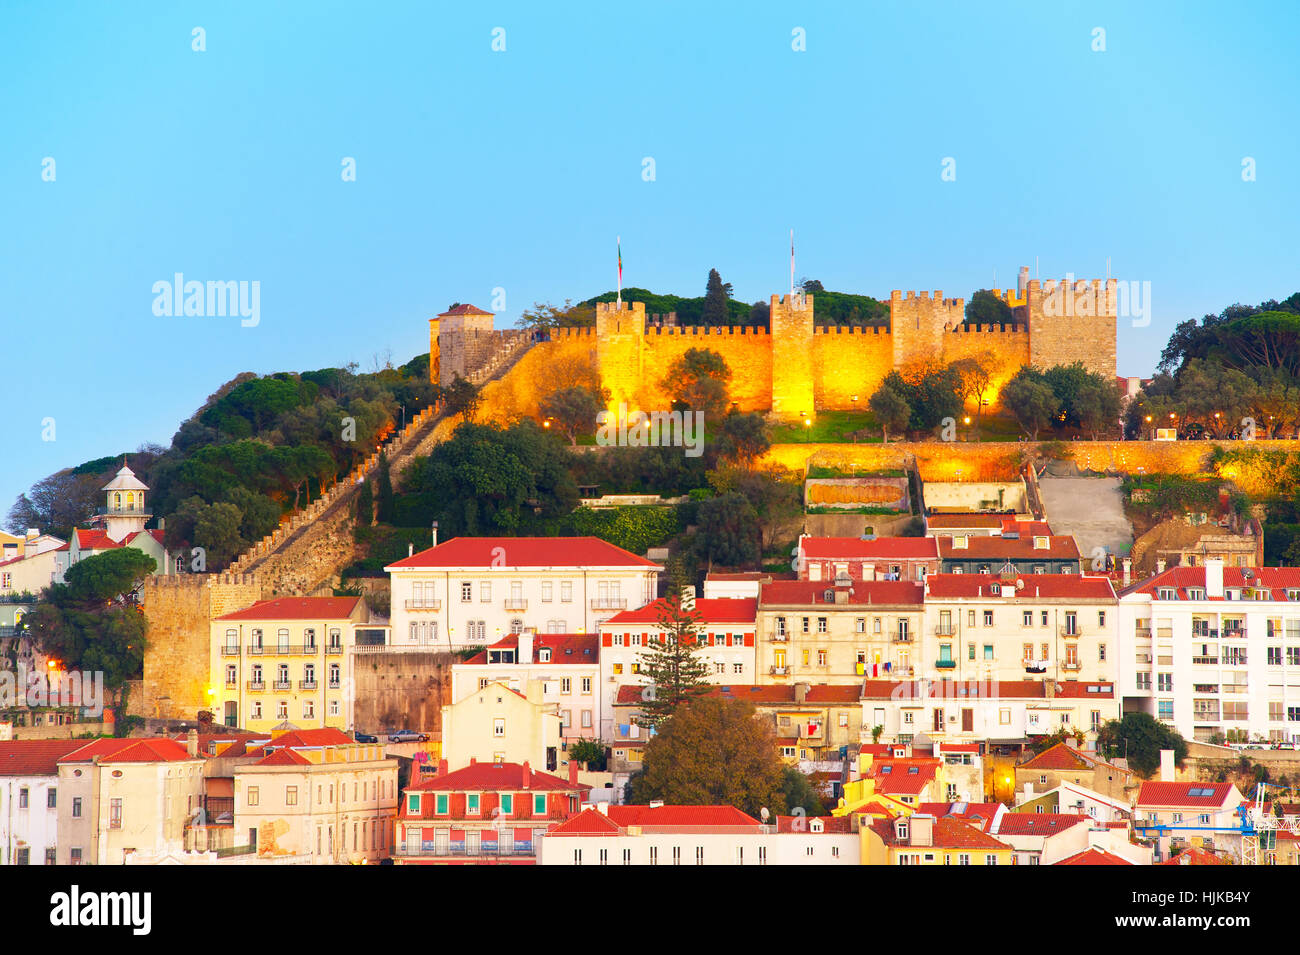 Lisbon Castle on a top of a hill at twilight. Lisbon, Portugal Stock Photo